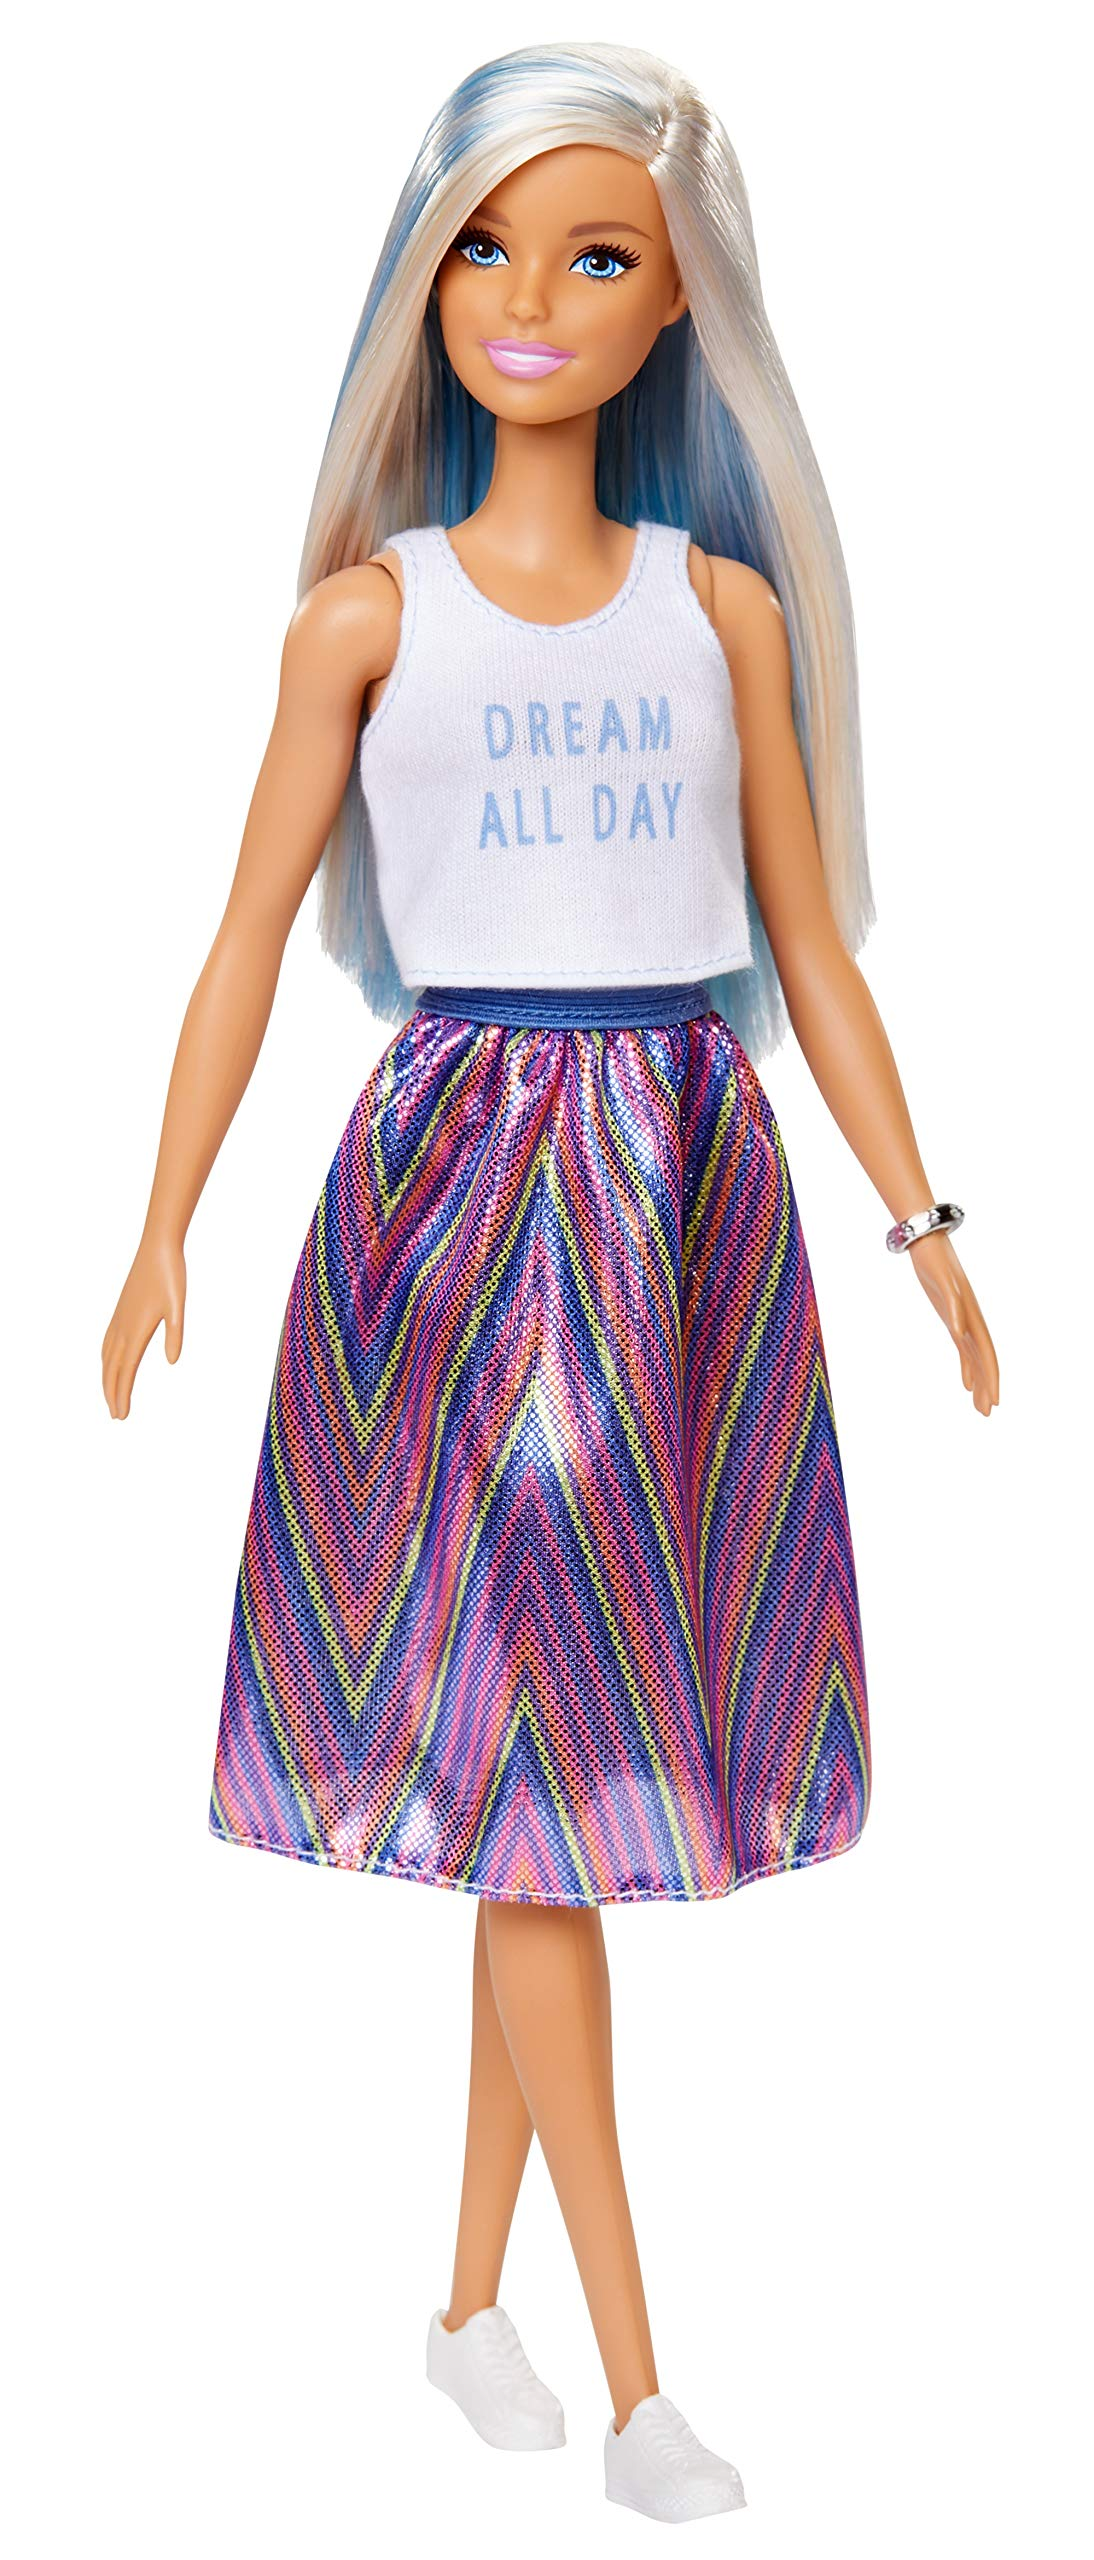 Barbie Fashionistas Doll with Long Blue and Platinum Blonde Hair Wearing Dream All Day Tank, Striped Skirt and Accessories, for 3 to 8 Year Olds